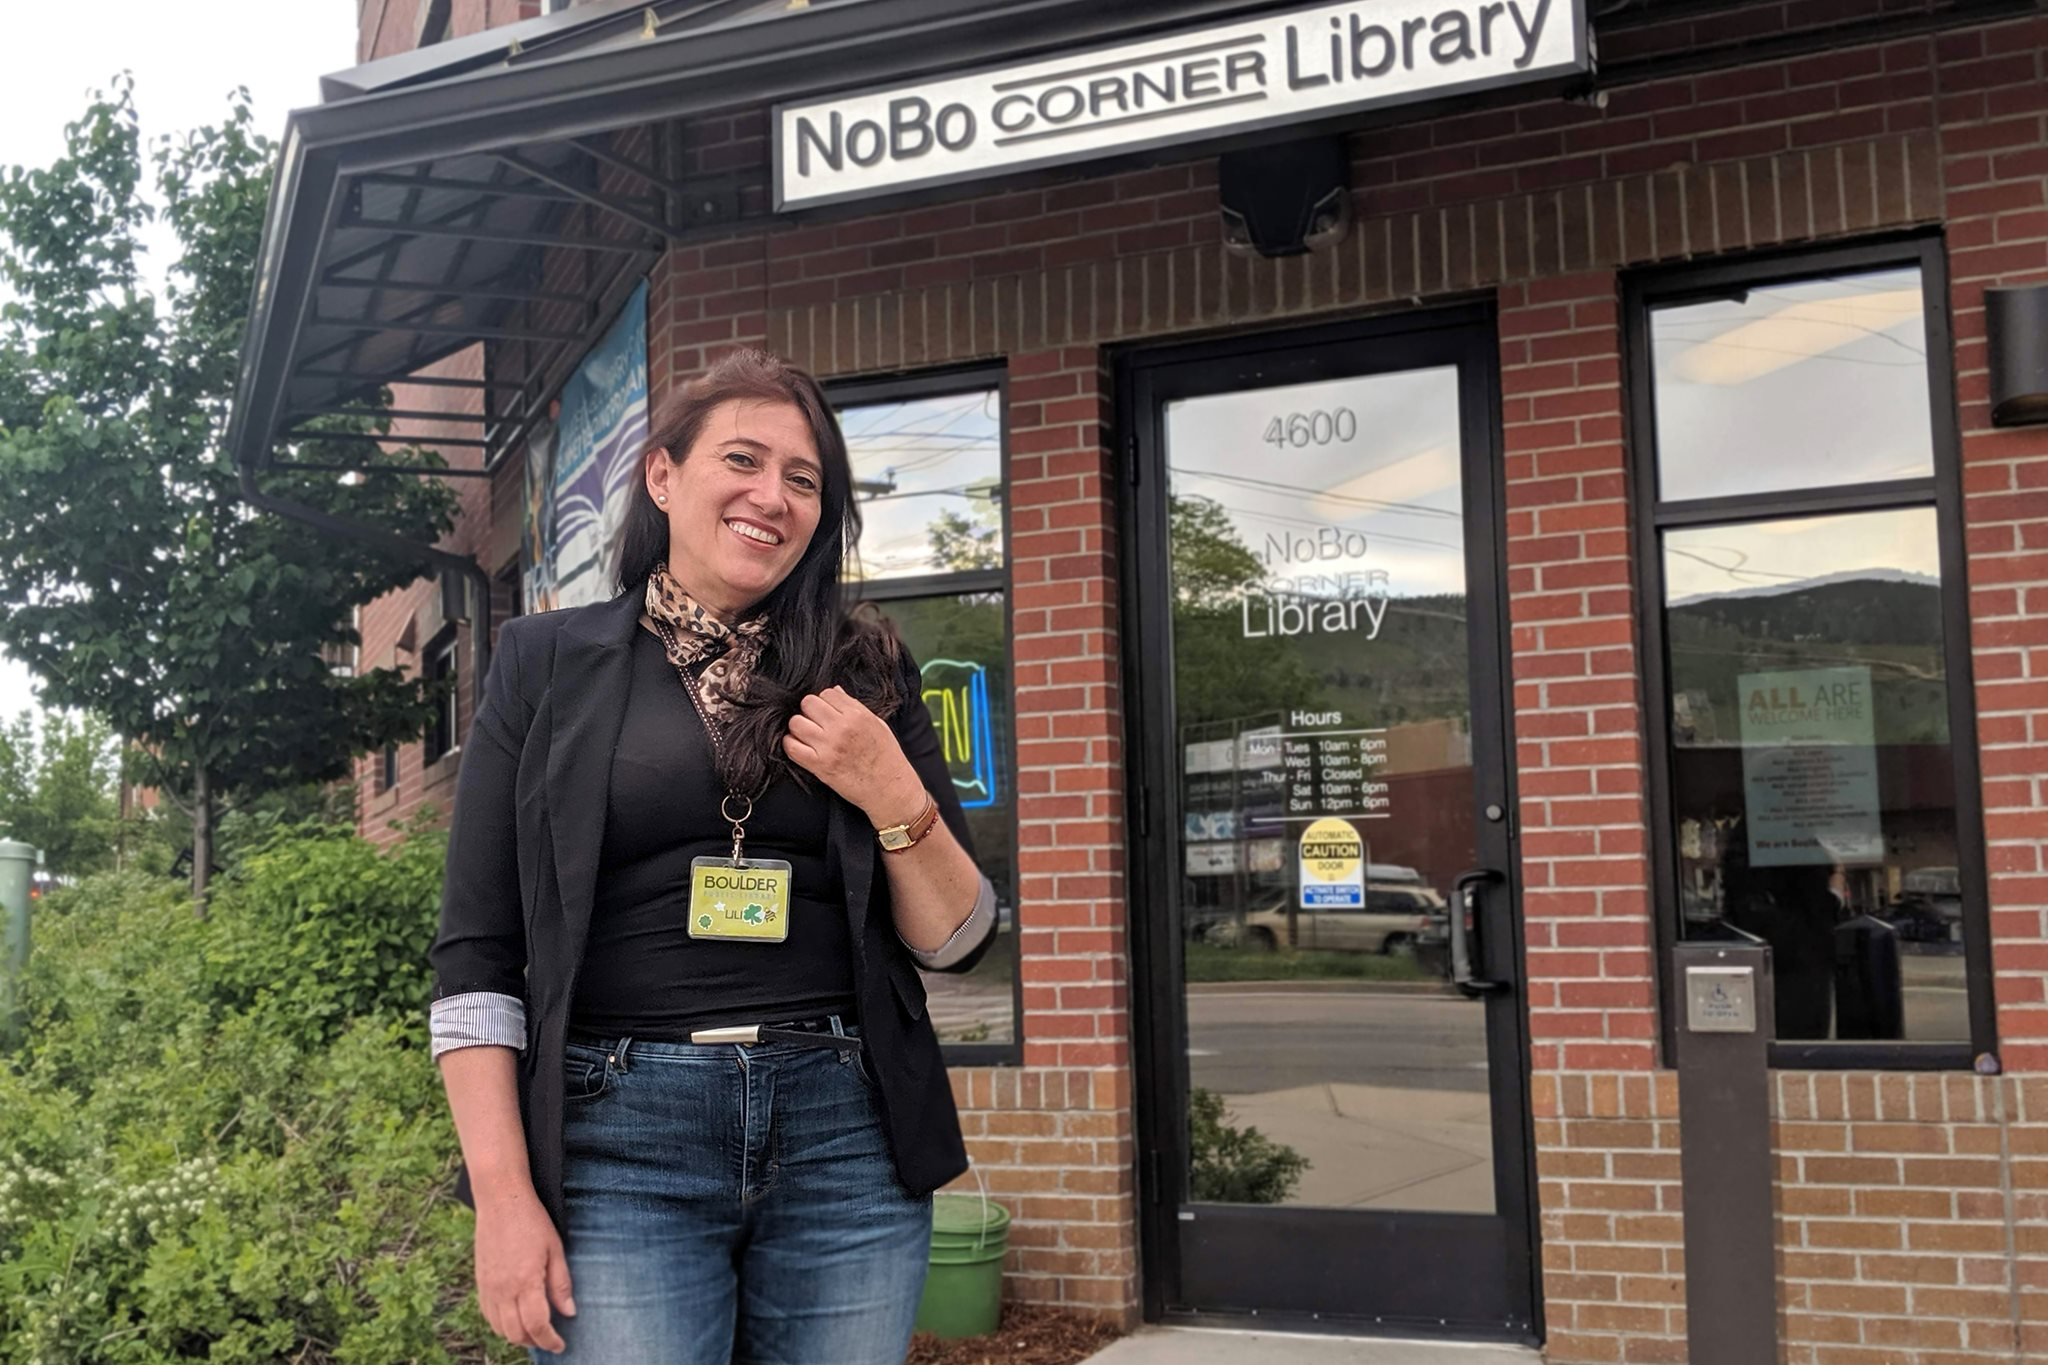 staff and NoBo Corner Library